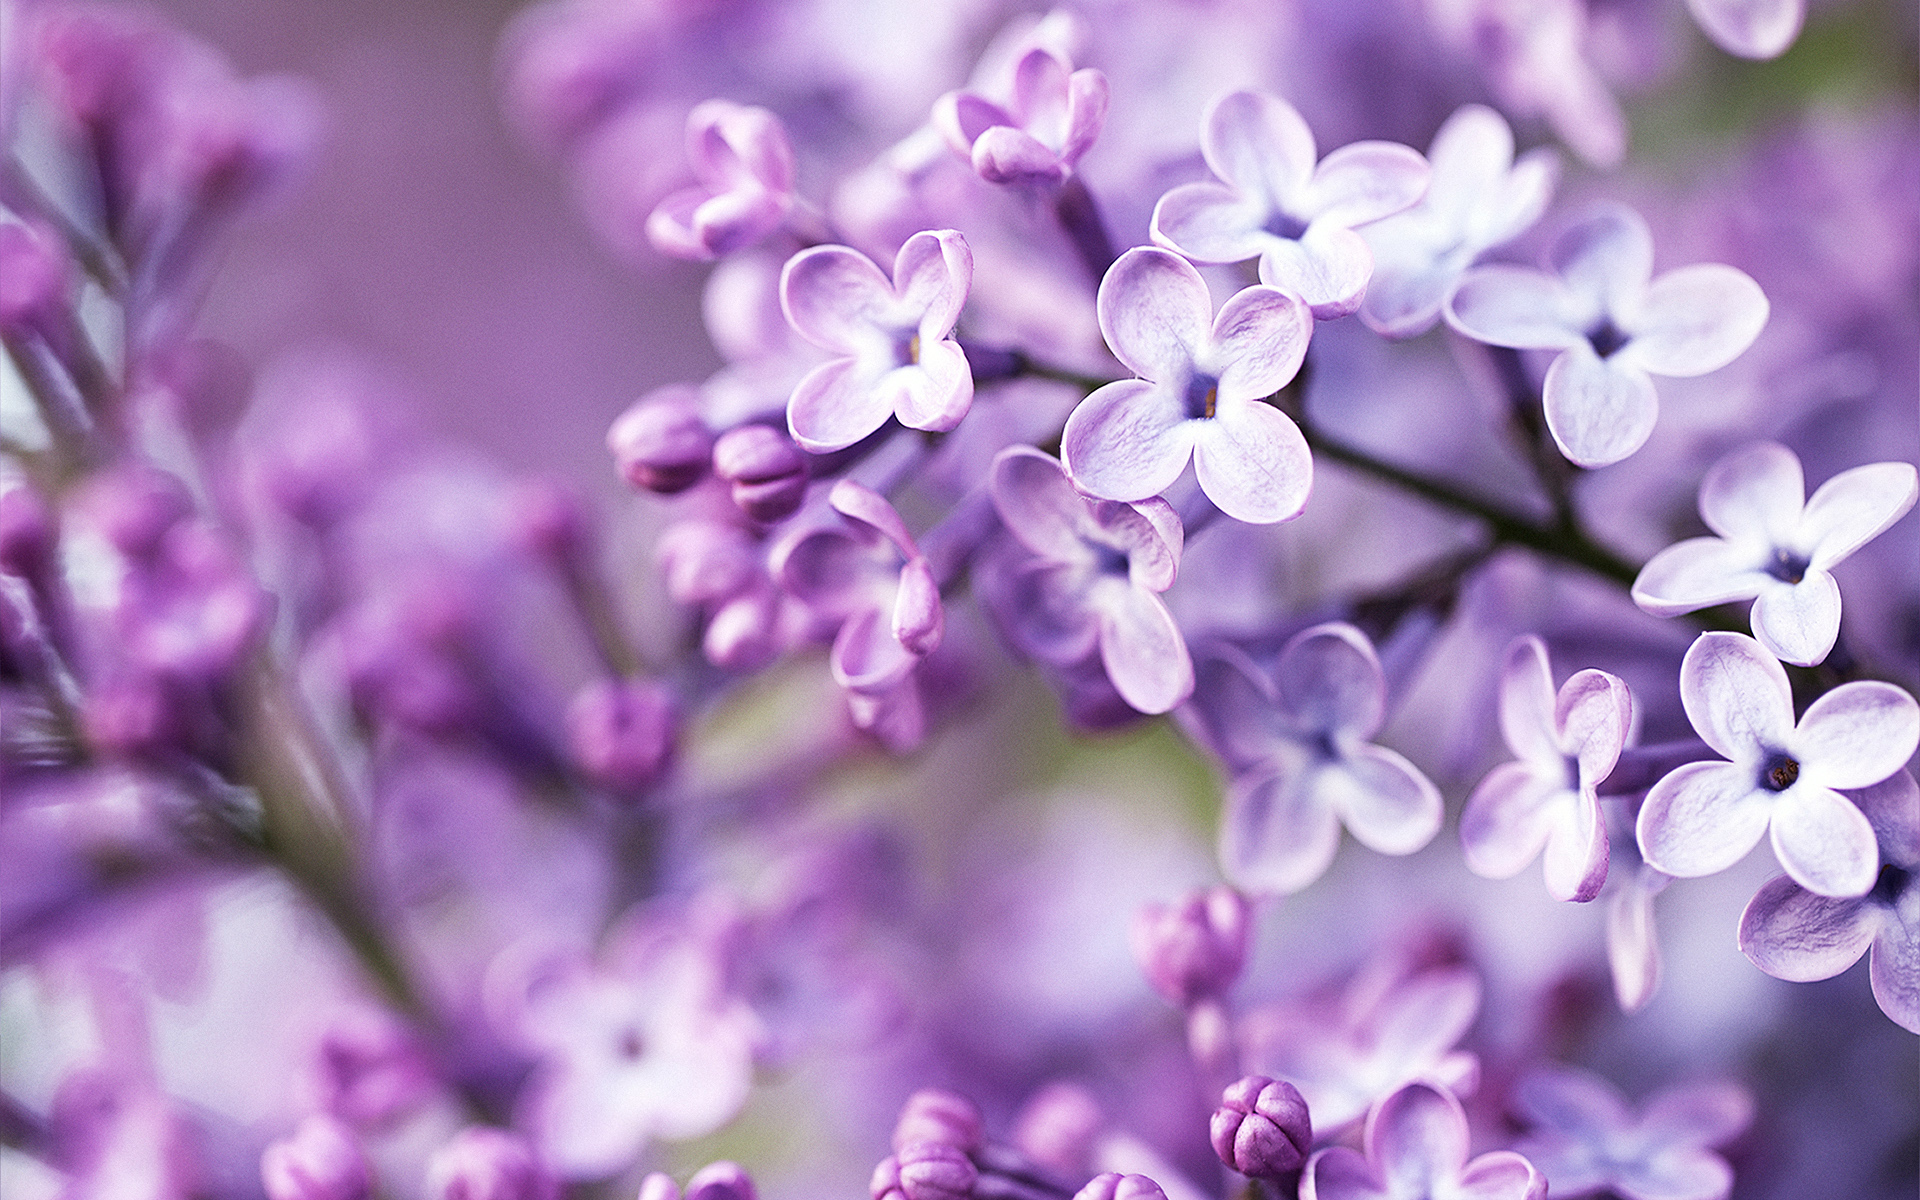 purple spring flowers wallpaper hd picture free download